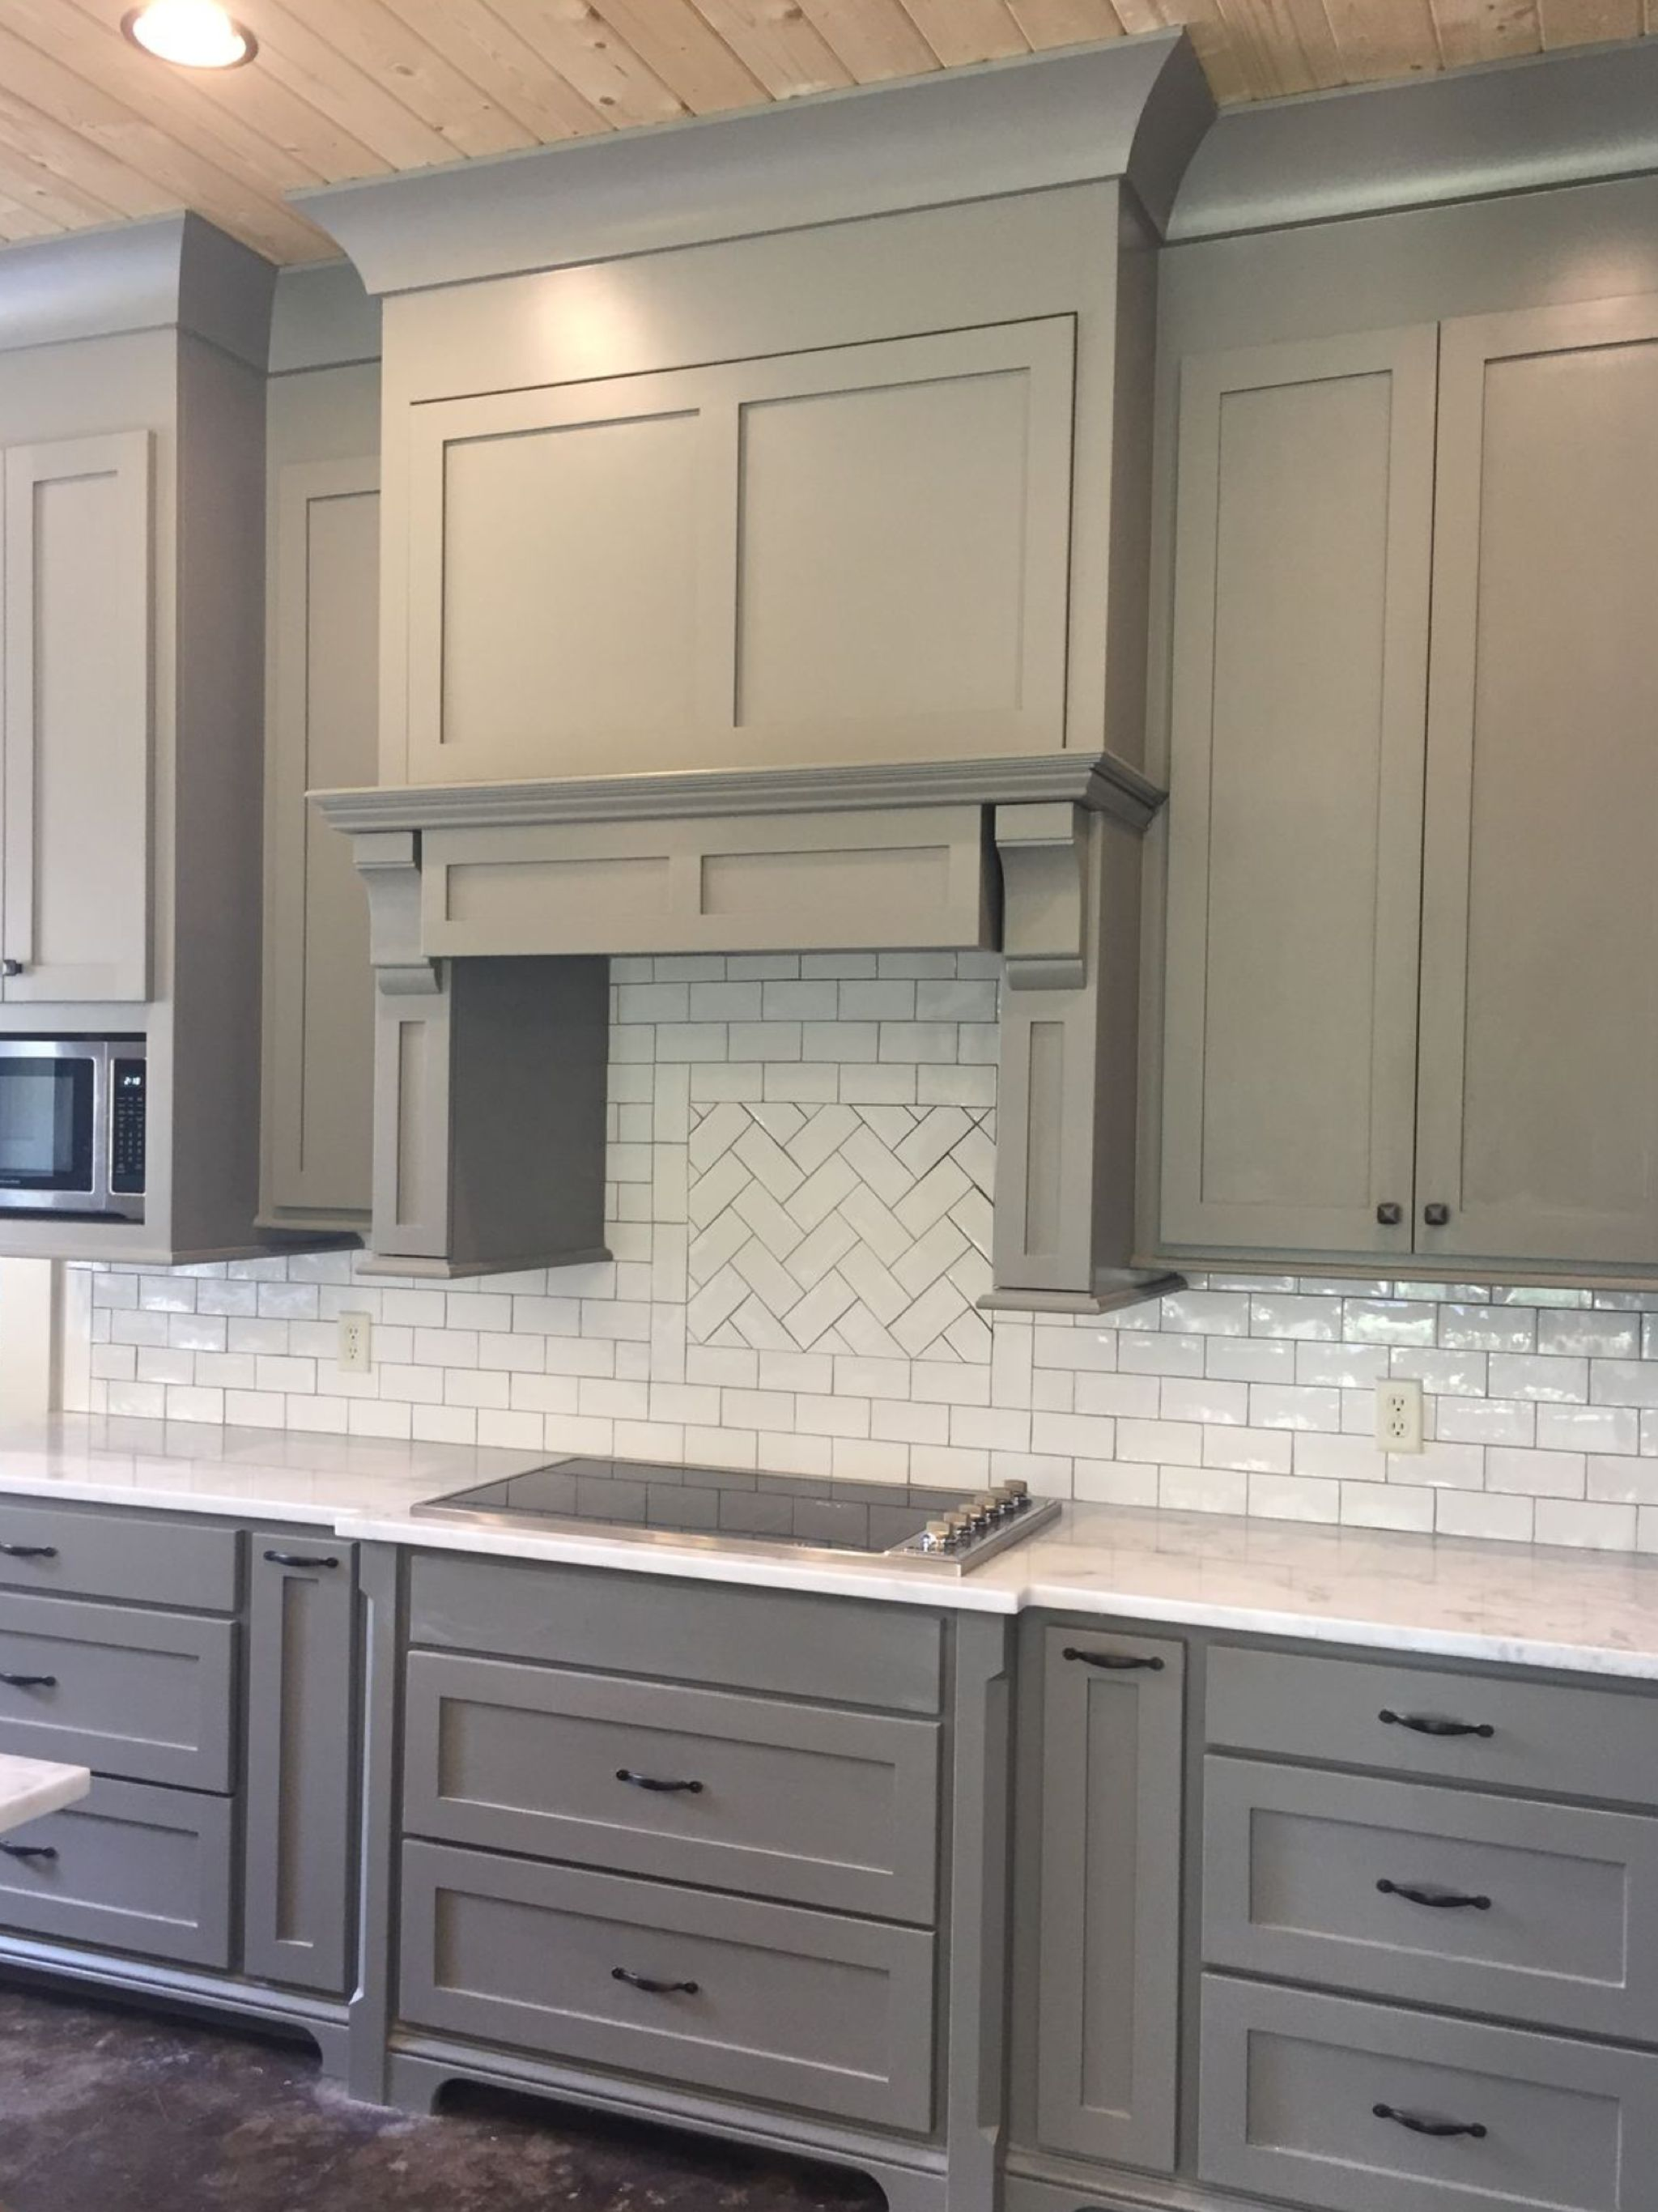 Grey Shaker Cabinets In 2020 Shaker Style Kitchens Kitchen Cabinet Styles Shaker Style Kitchen Cabinets